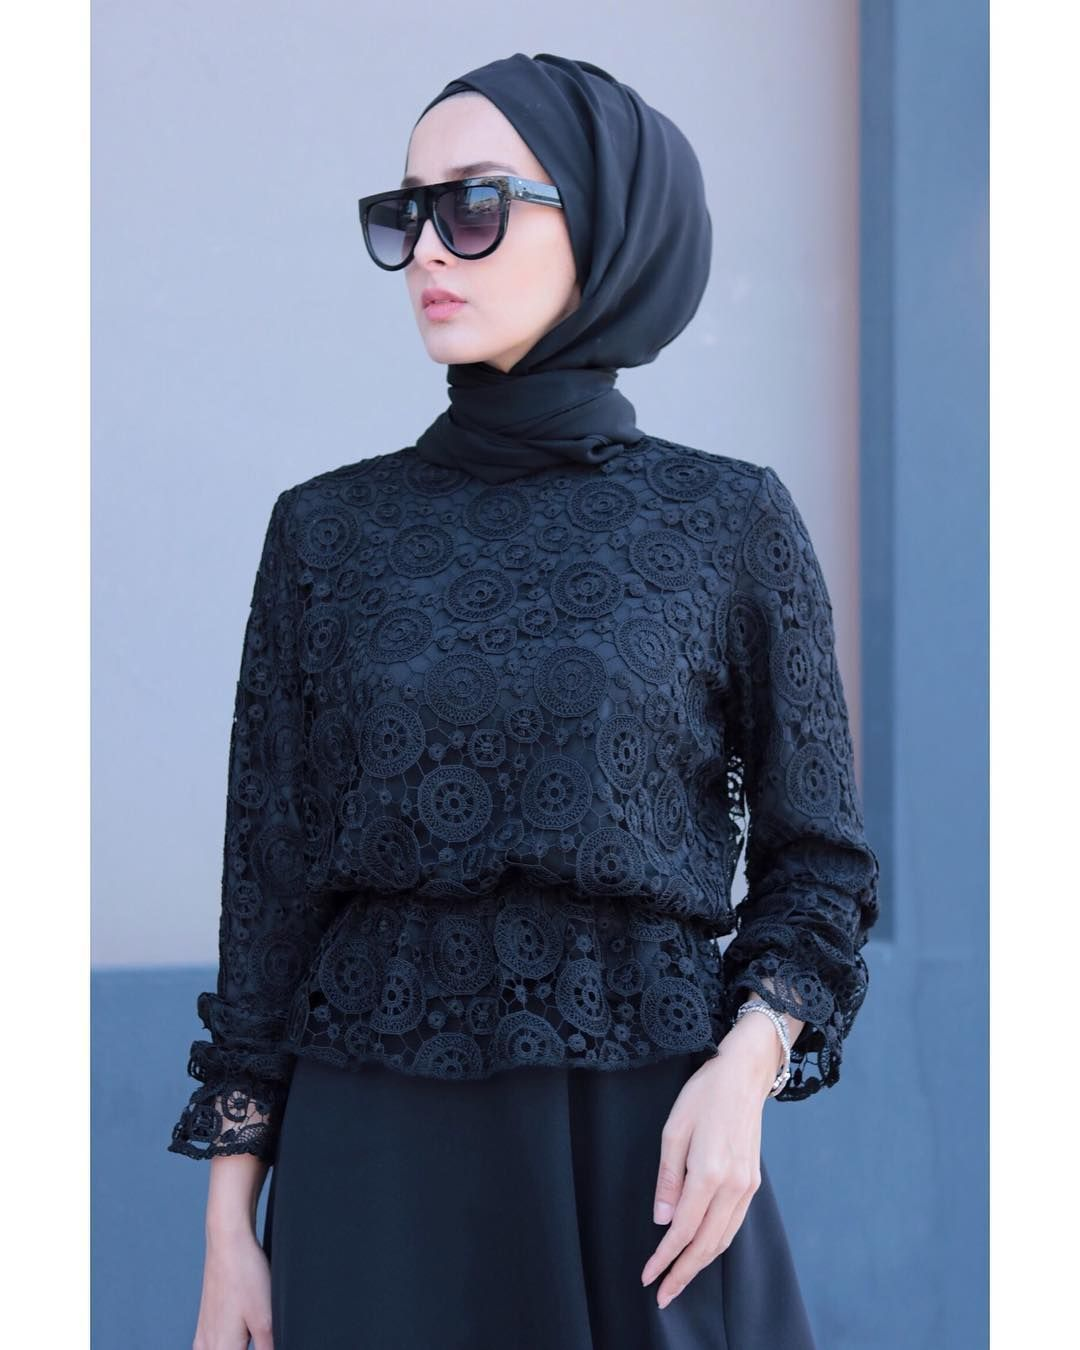 15+ Fitness Outfits Women Hijab#fitness #hijab #outfits #women